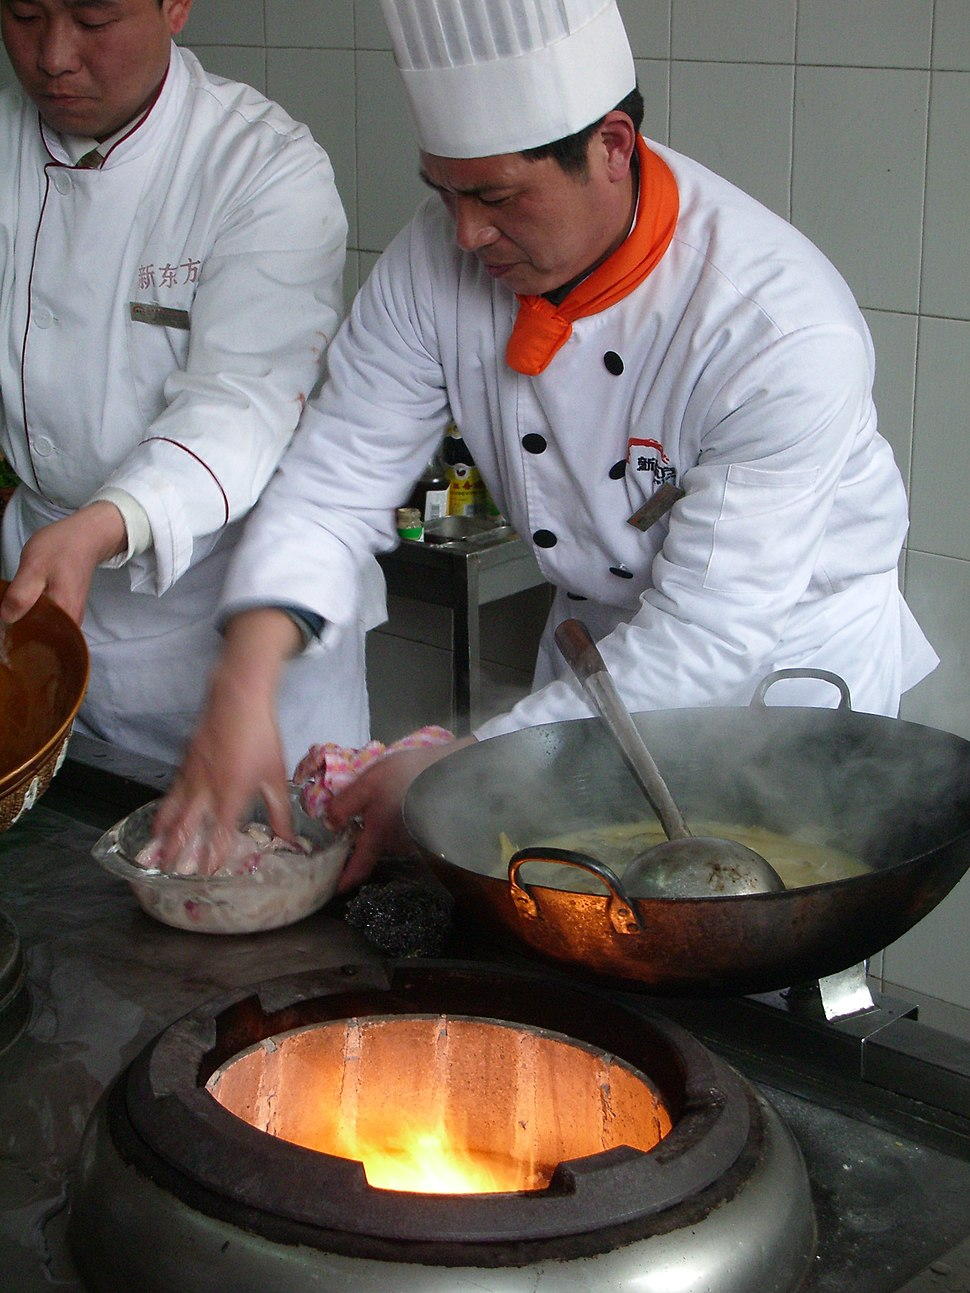 Wok cooking and the heat source by The Pocket in Nanjing